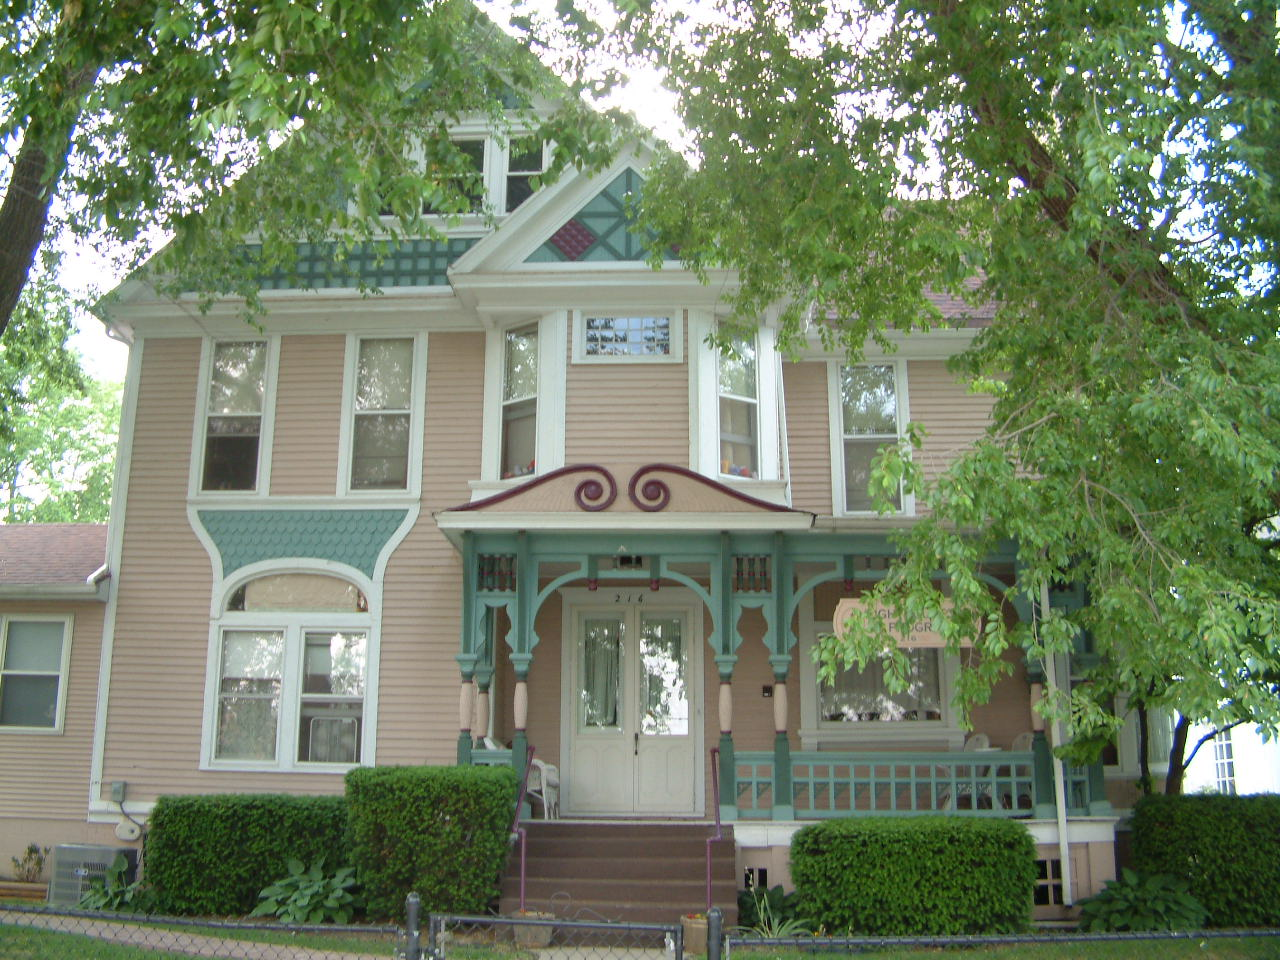 Rial Clay House, 216 Division Street, 1892